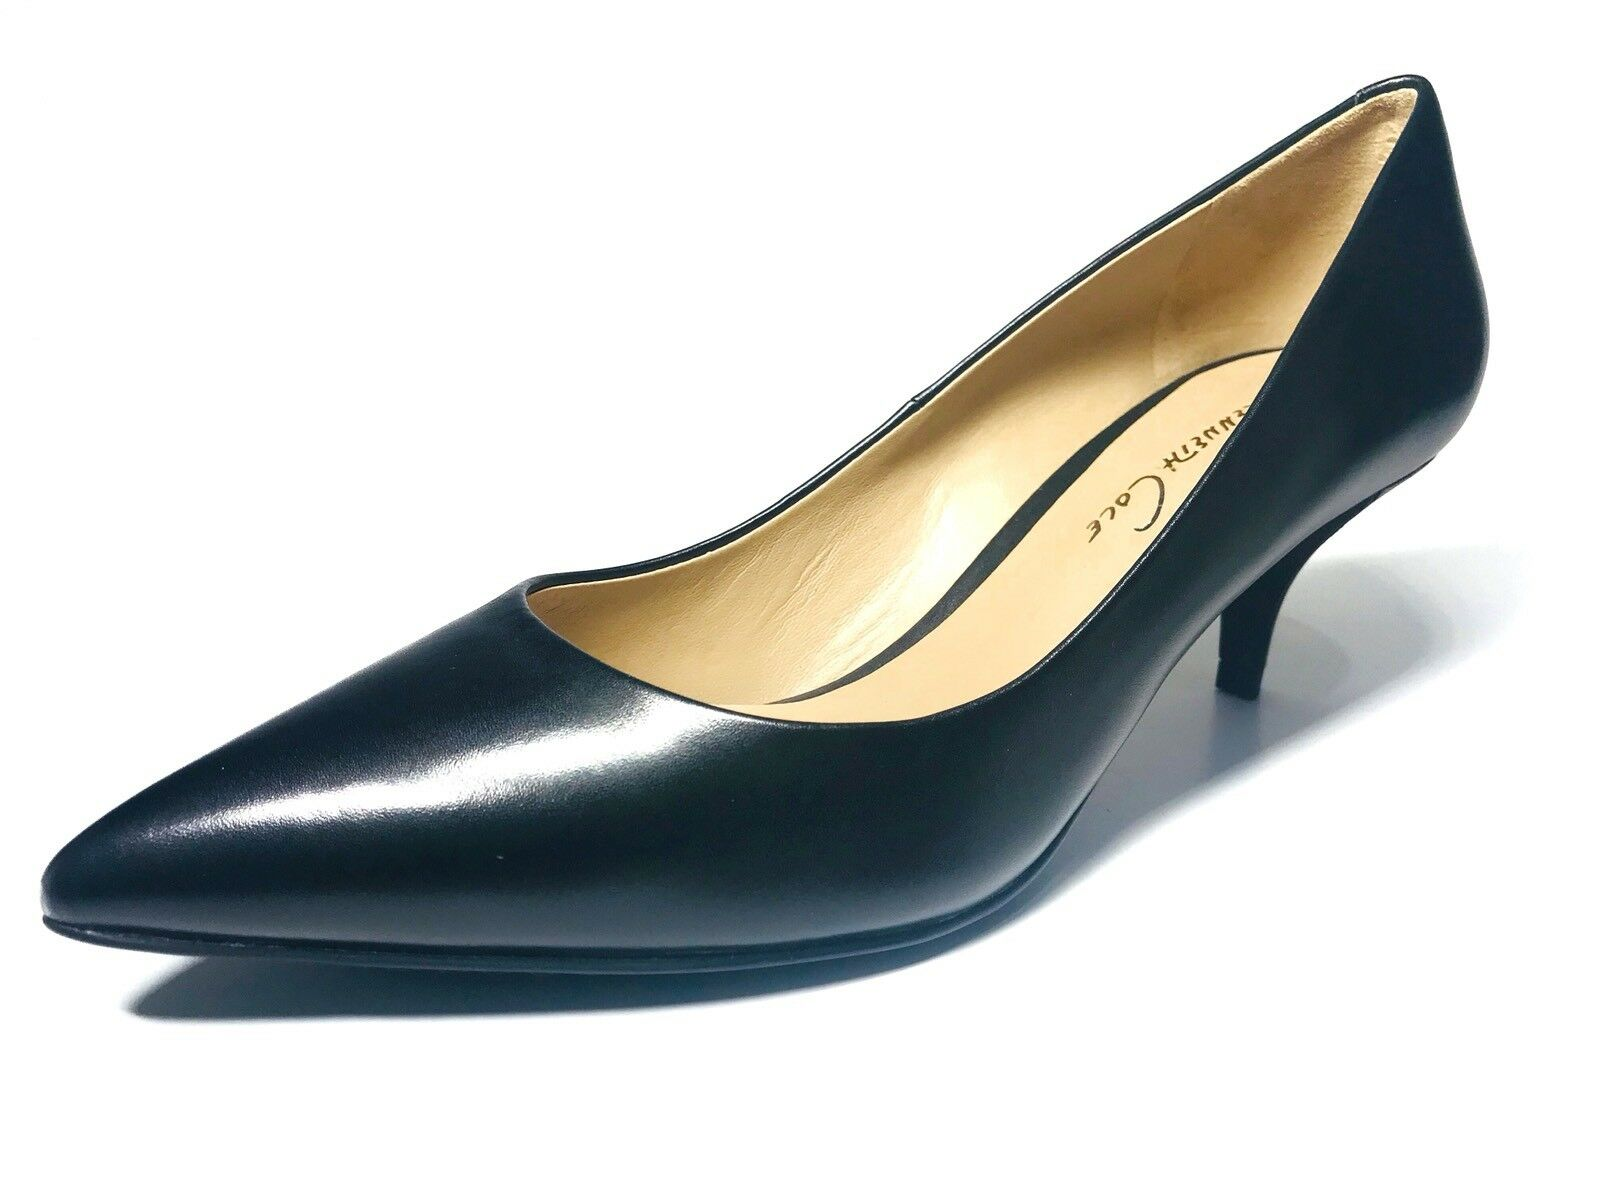 Kenneth Cole Kitten High Heels Classic Pumps BLACK LEATHER POINTED TOE 2  Heel